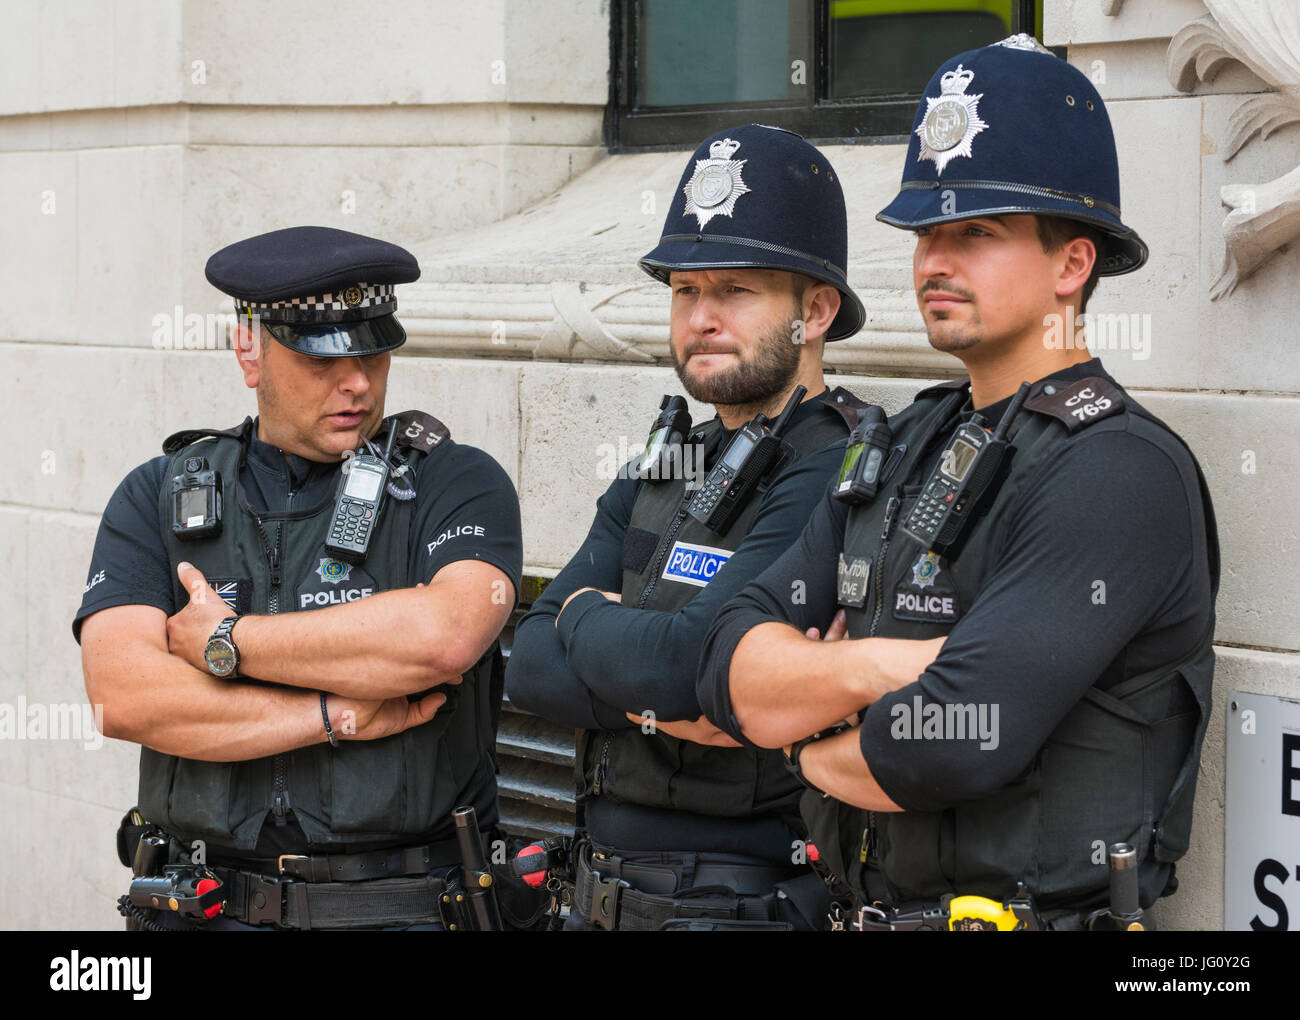 Police officers standing against a wall at a public event in the south of England, UK. - Stock Image